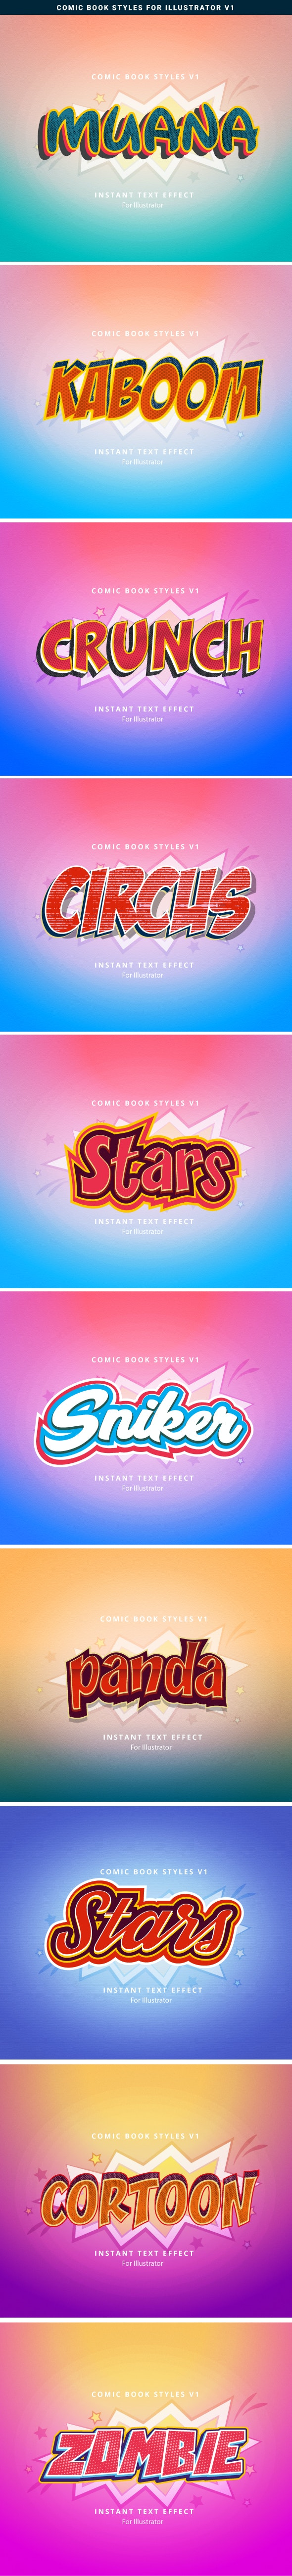 Comic Book Text Effects - Styles Illustrator